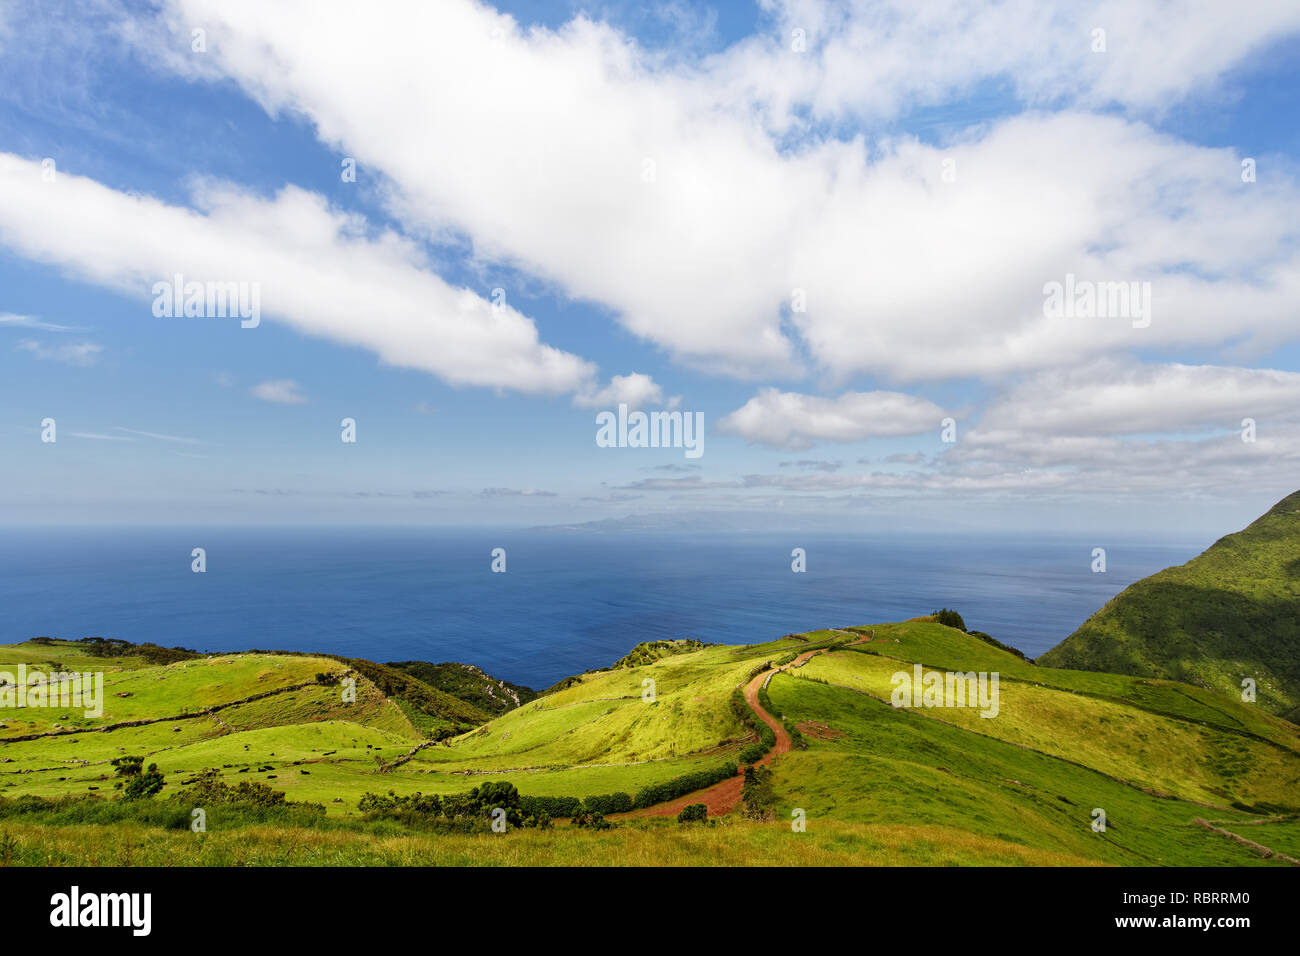 Azores - View from the north side of the island of Sao Jorge to the imposing volcano Pico on the neighboring island of the same name, a red dirt road  - Stock Image